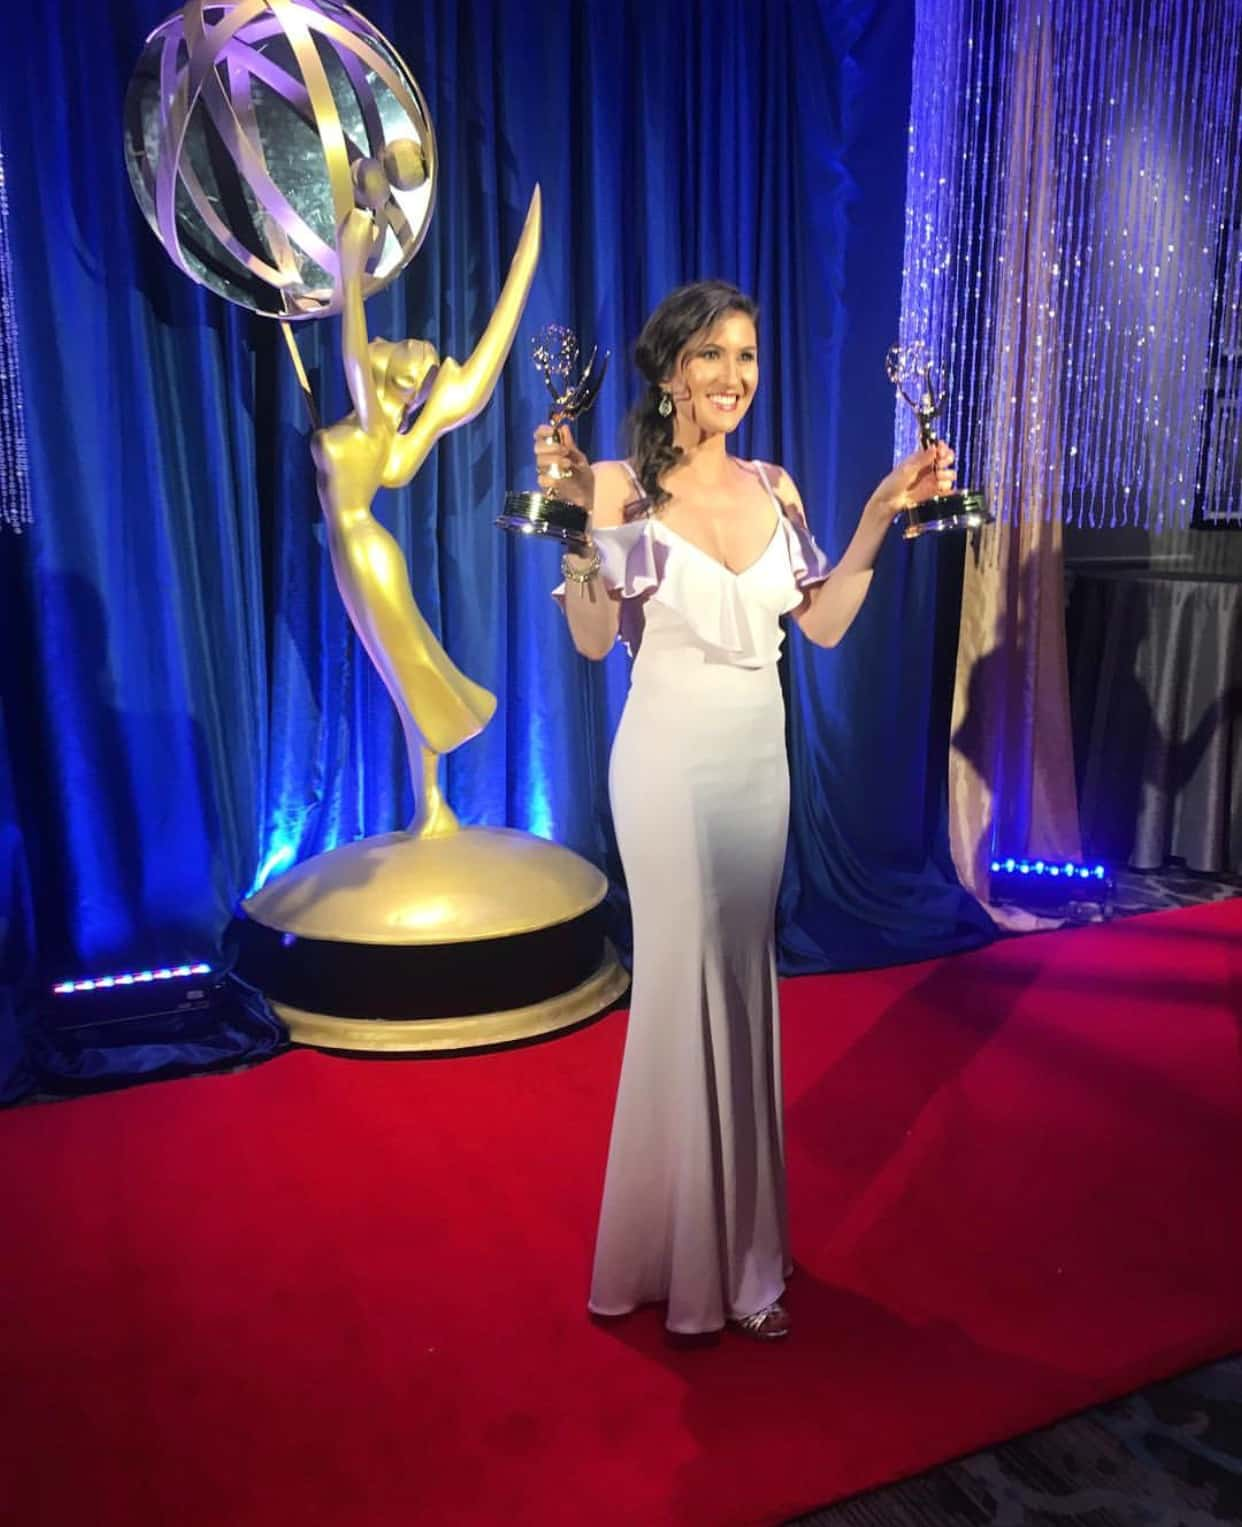 Swoon Talent's on-camera lifestyle host Ashley Mengwasser on the night she won two Emmy's